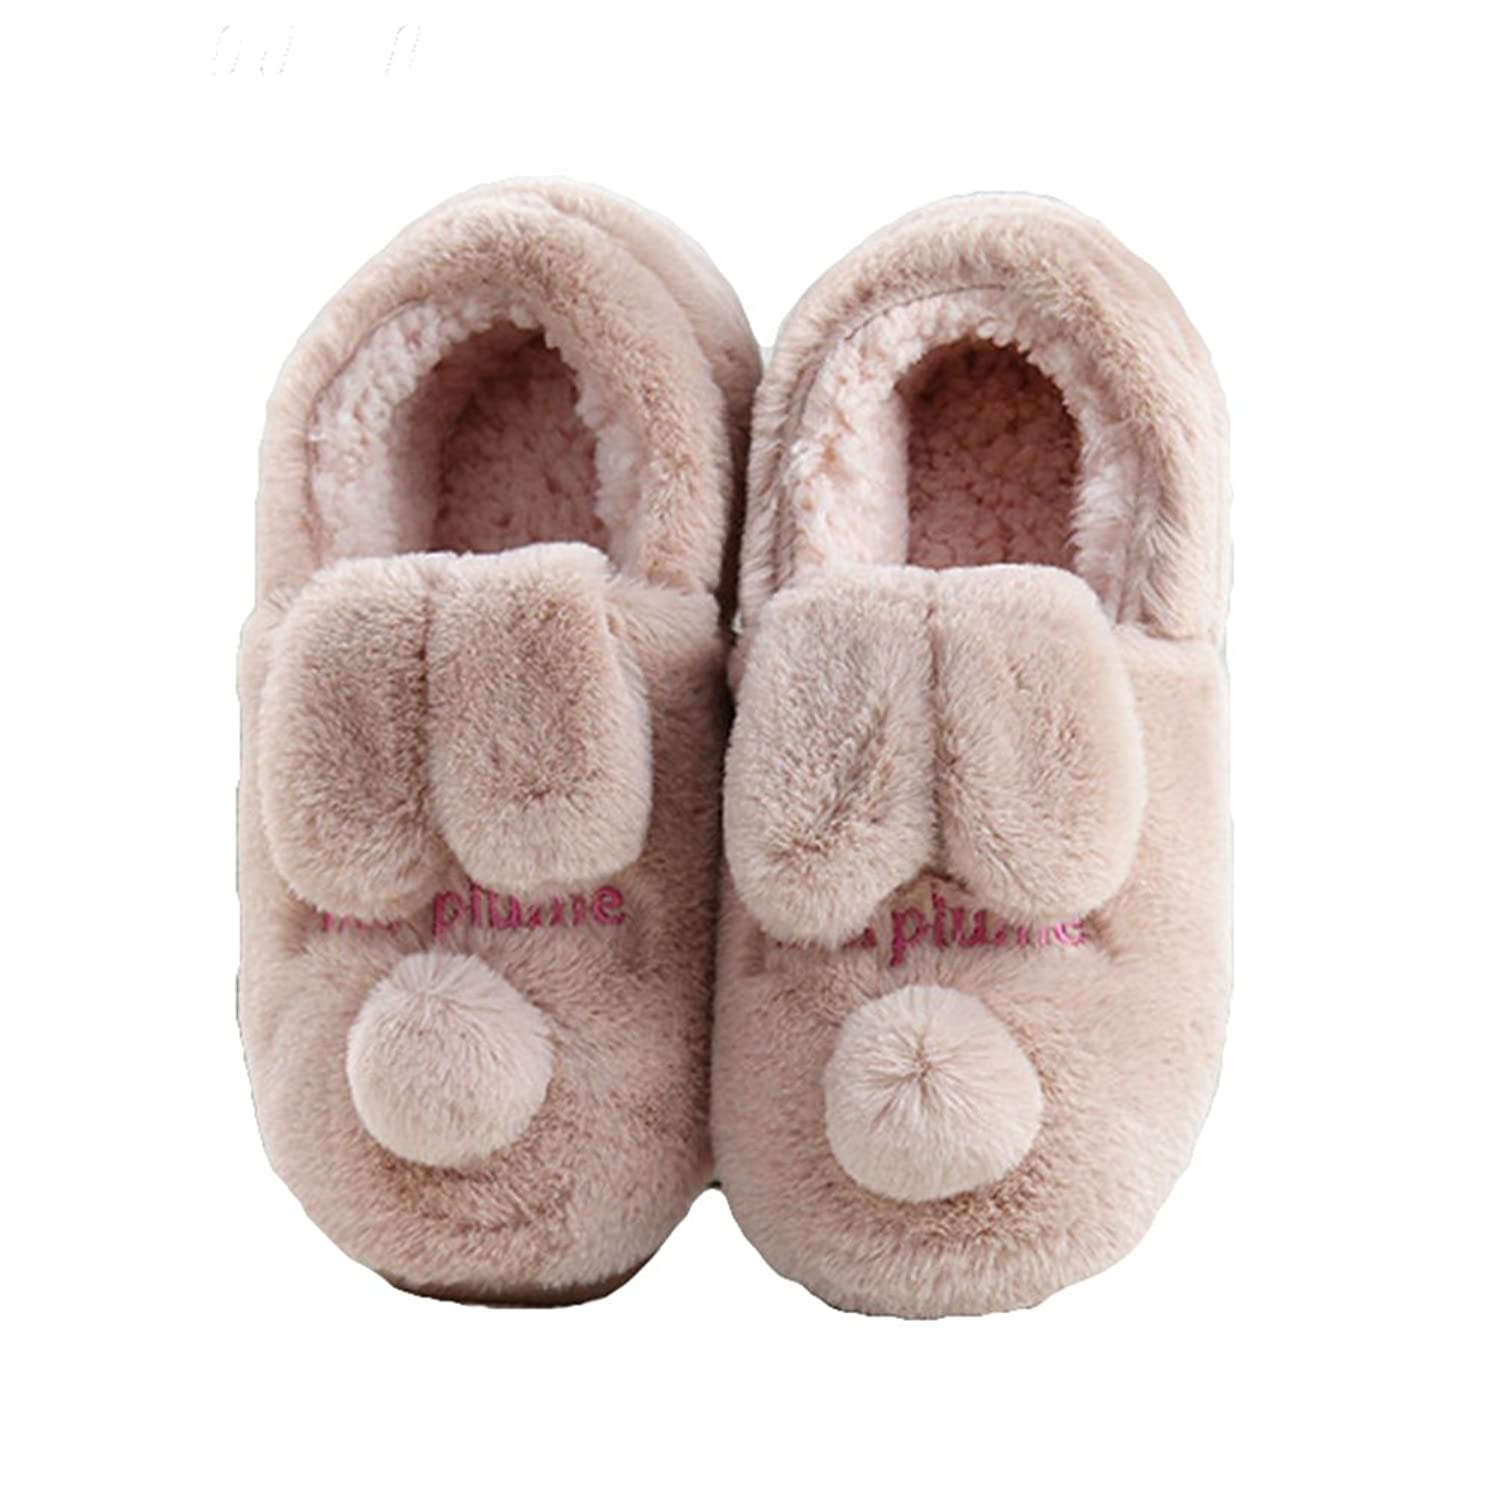 3e5823a3d33515 Btrada Womens Winter Cozy Fur Lined Cotton Slippers Cartoon Dog Outdoor  Indoor Moccasin Couple Slippers